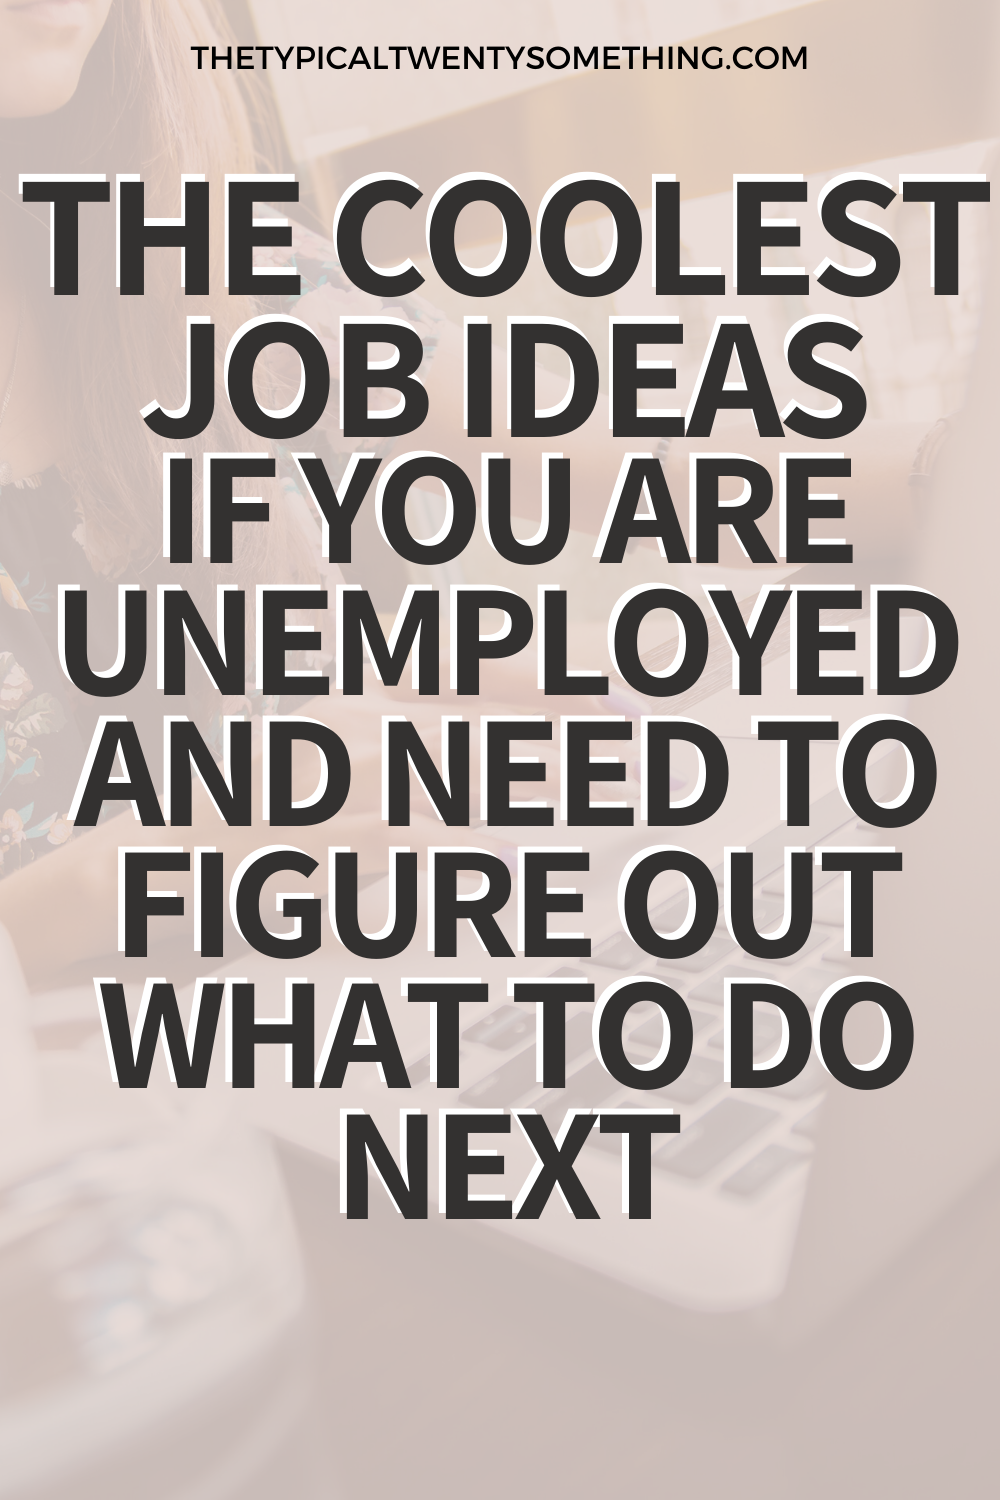 Cool Jobs For 20 Somethings If You Are Trying To Figure Out What To Do With Your Life New Job Quotes Job Quotes Job Inspiration